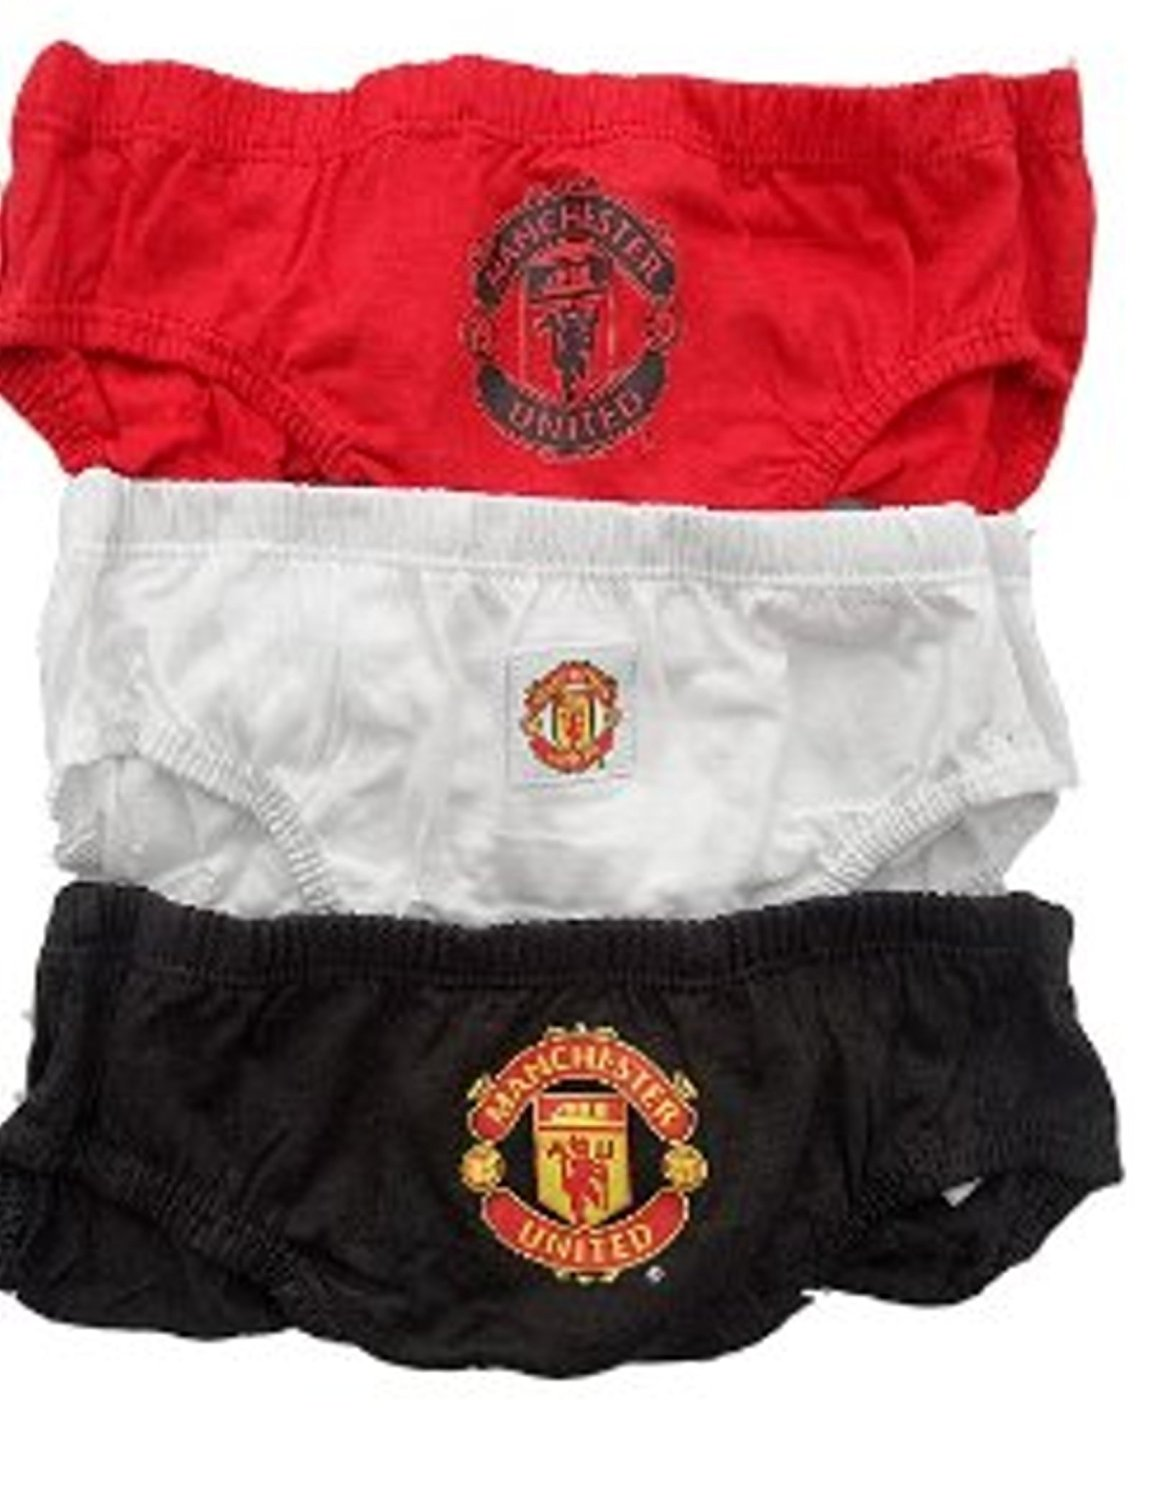 Manchester United Kids (Boys Youth) Briefs - 3 Pack